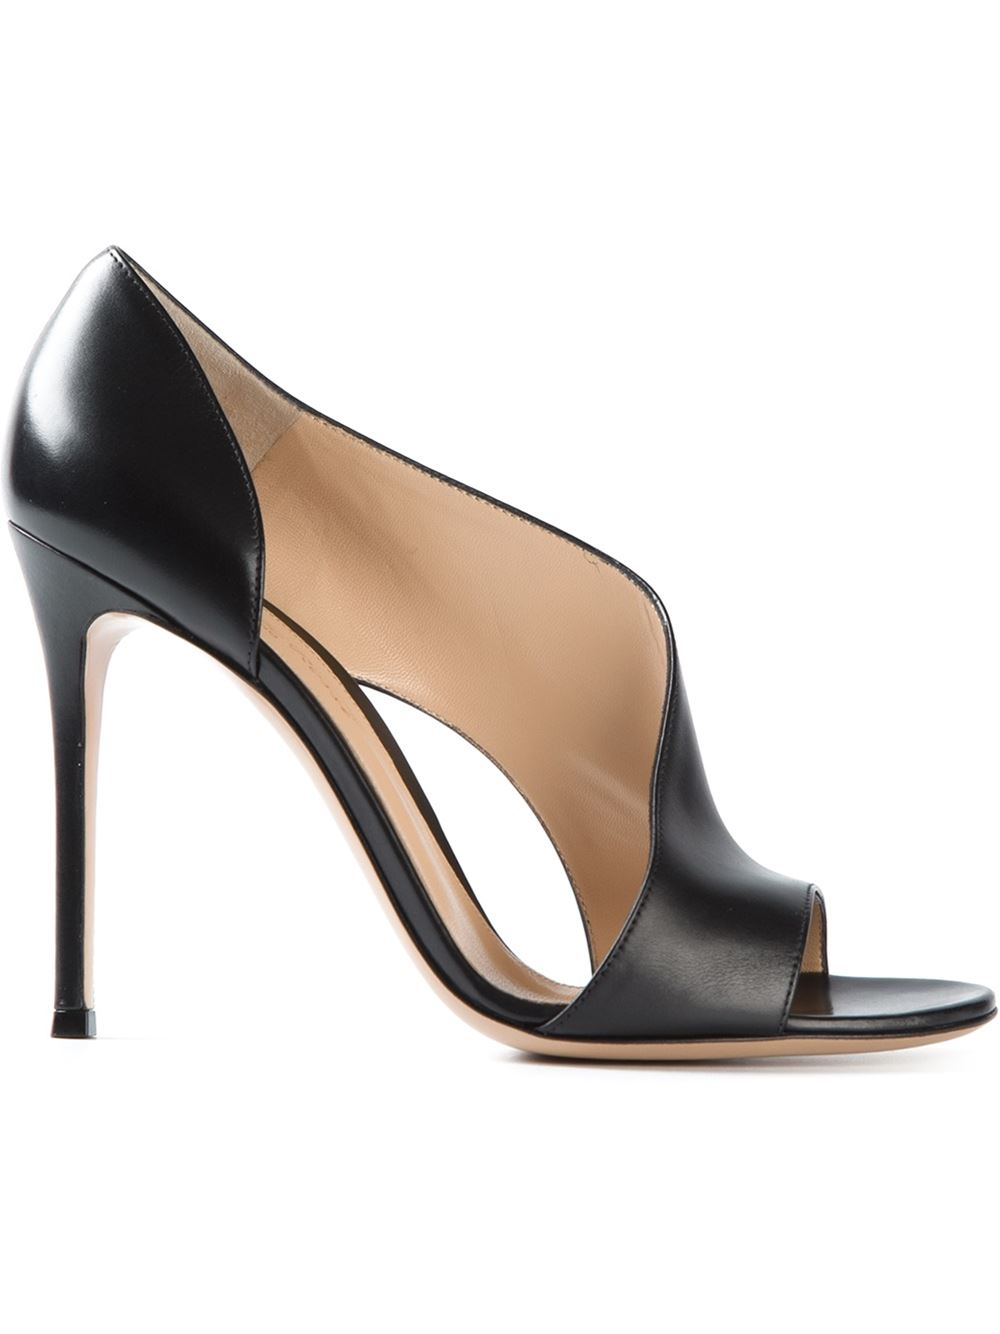 Gianvito Rossi Mens Shoes